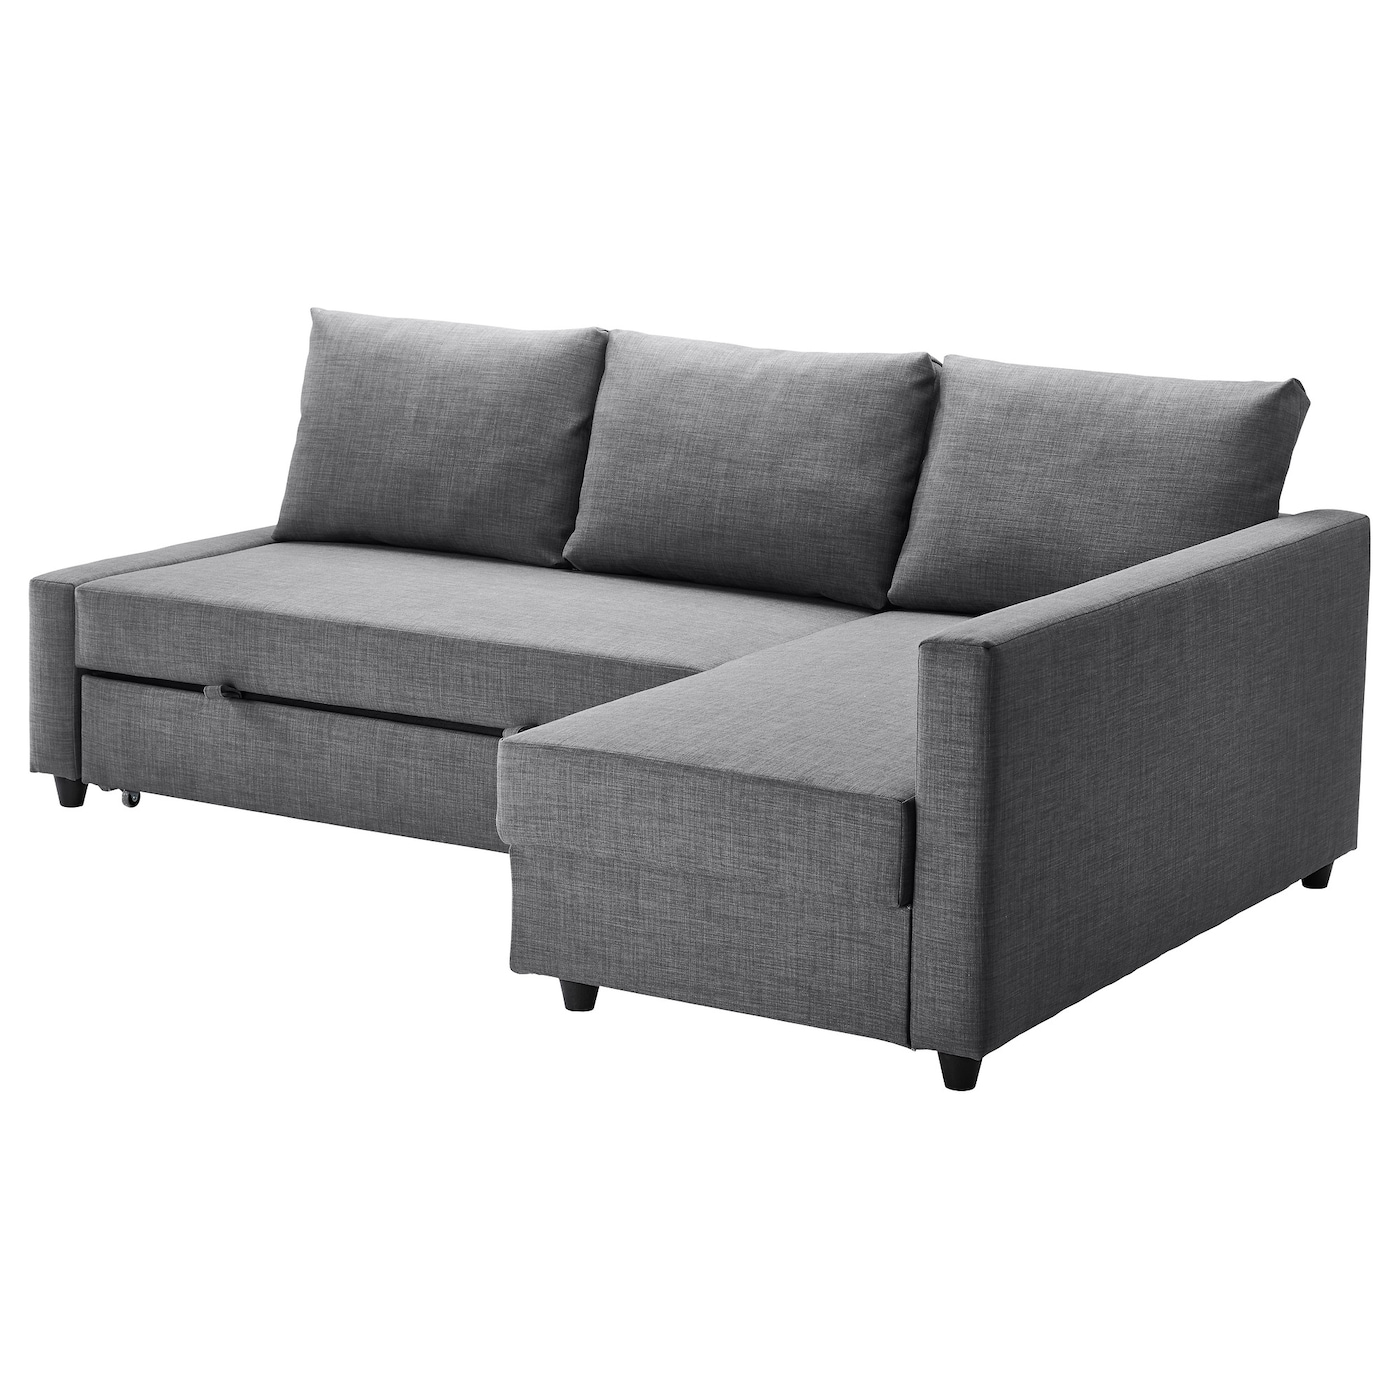 Corner Sofa Bed With Storage Friheten Skiftebo Dark Gray